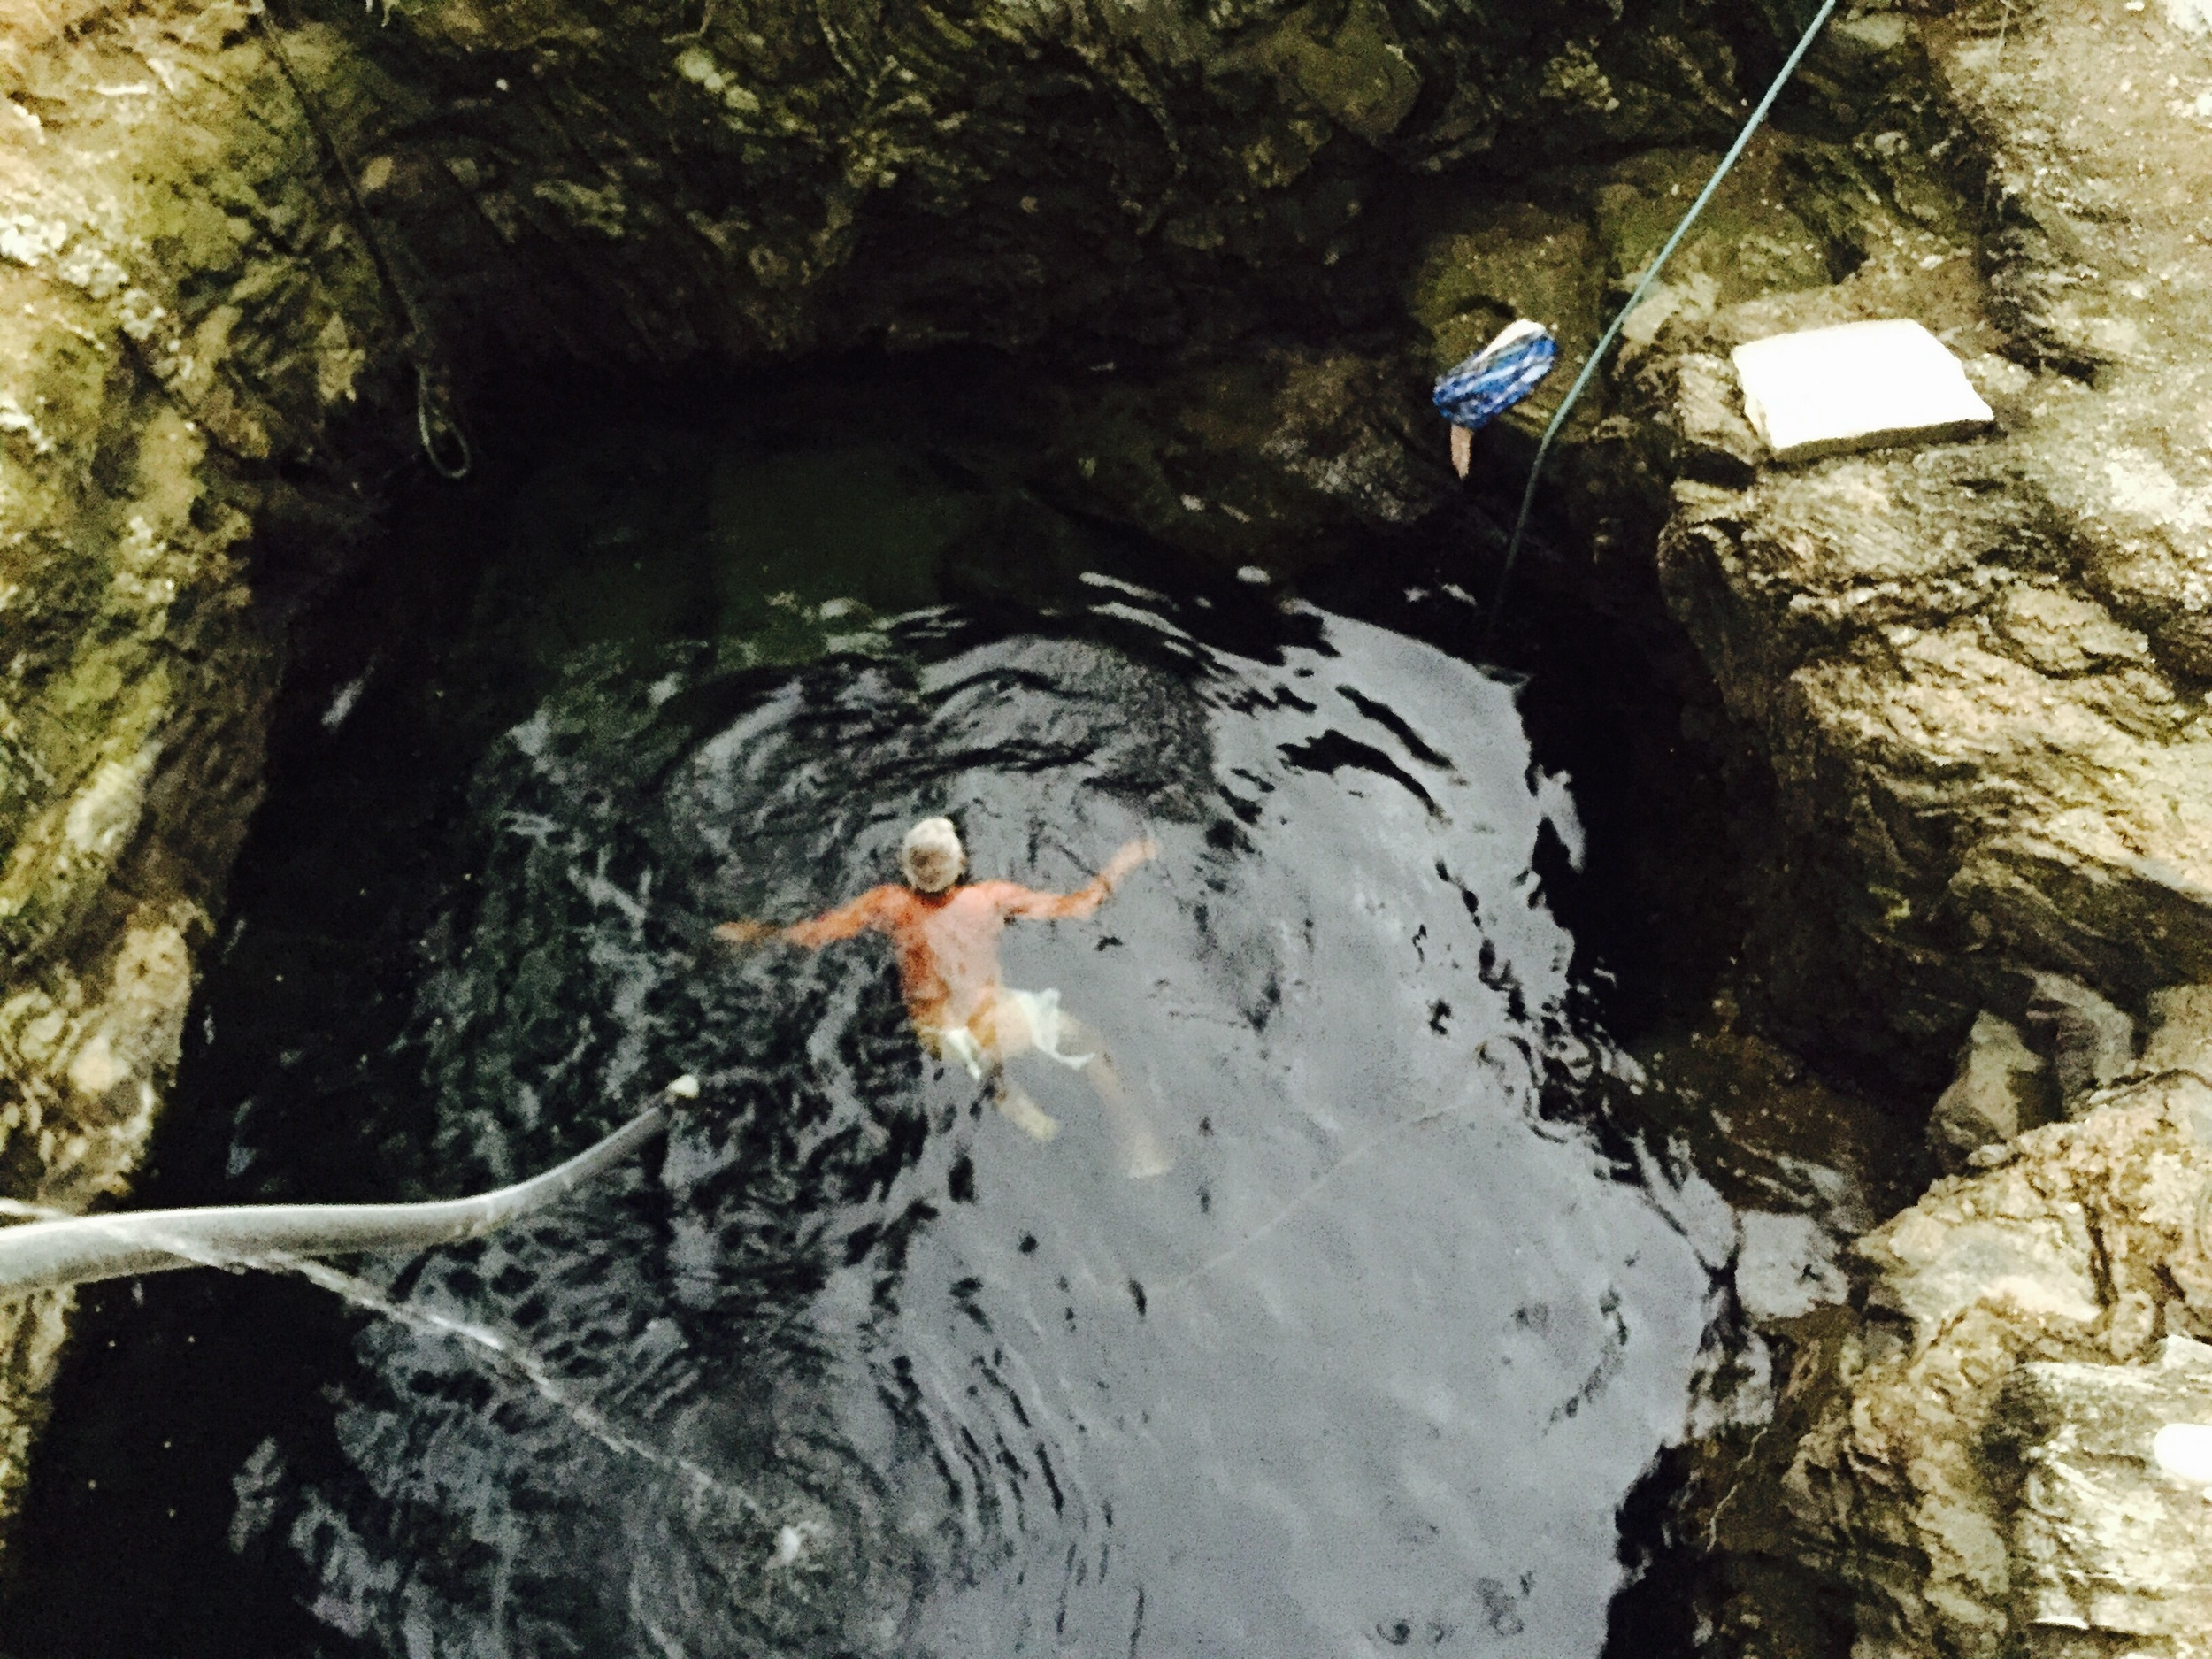 A quick dip in the well